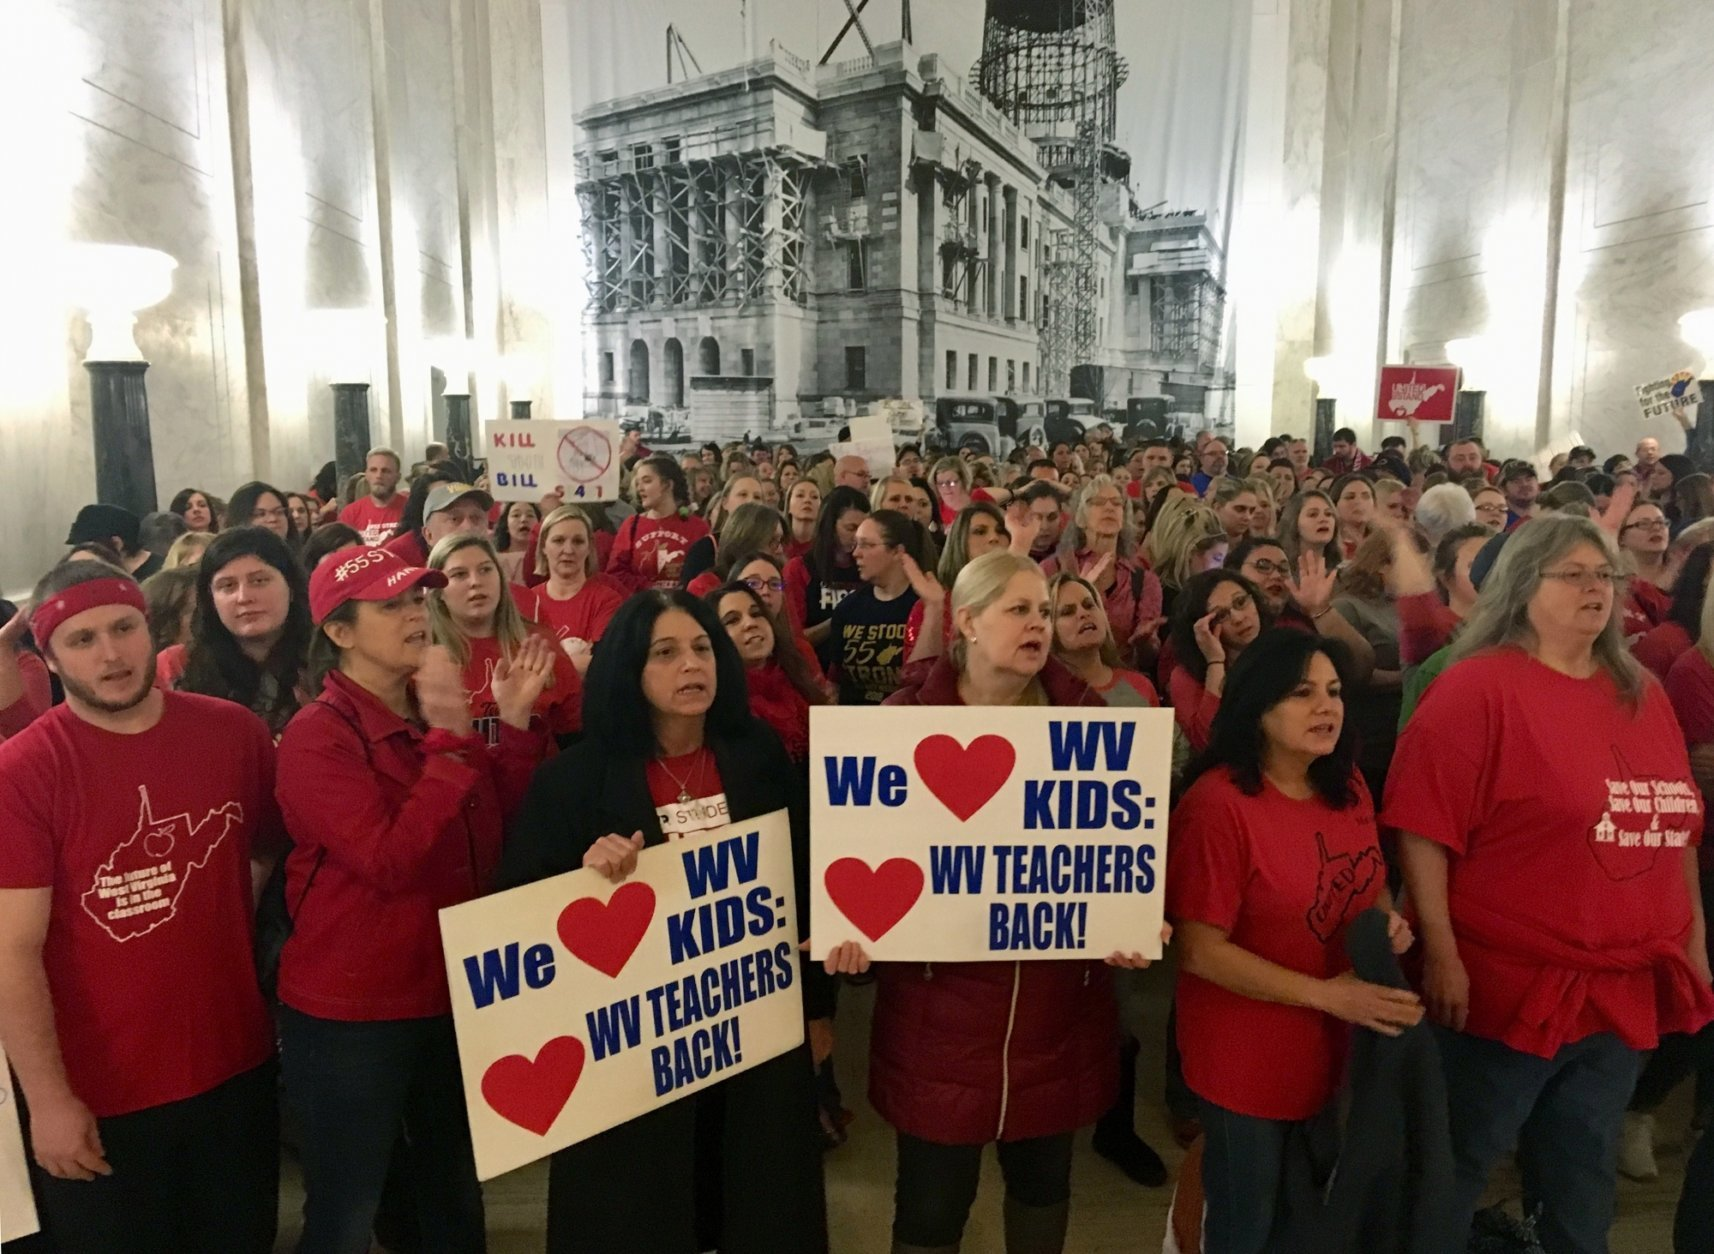 Striking West Virginia teachers and supporters rally outside the House of Delegates chambers Tuesday, Feb. 19, 2019, at the state Capitol in Charleston, W.Va. Teachers are opposed to a complex education bill making its way through the Legislature. (AP Photo/John Raby)